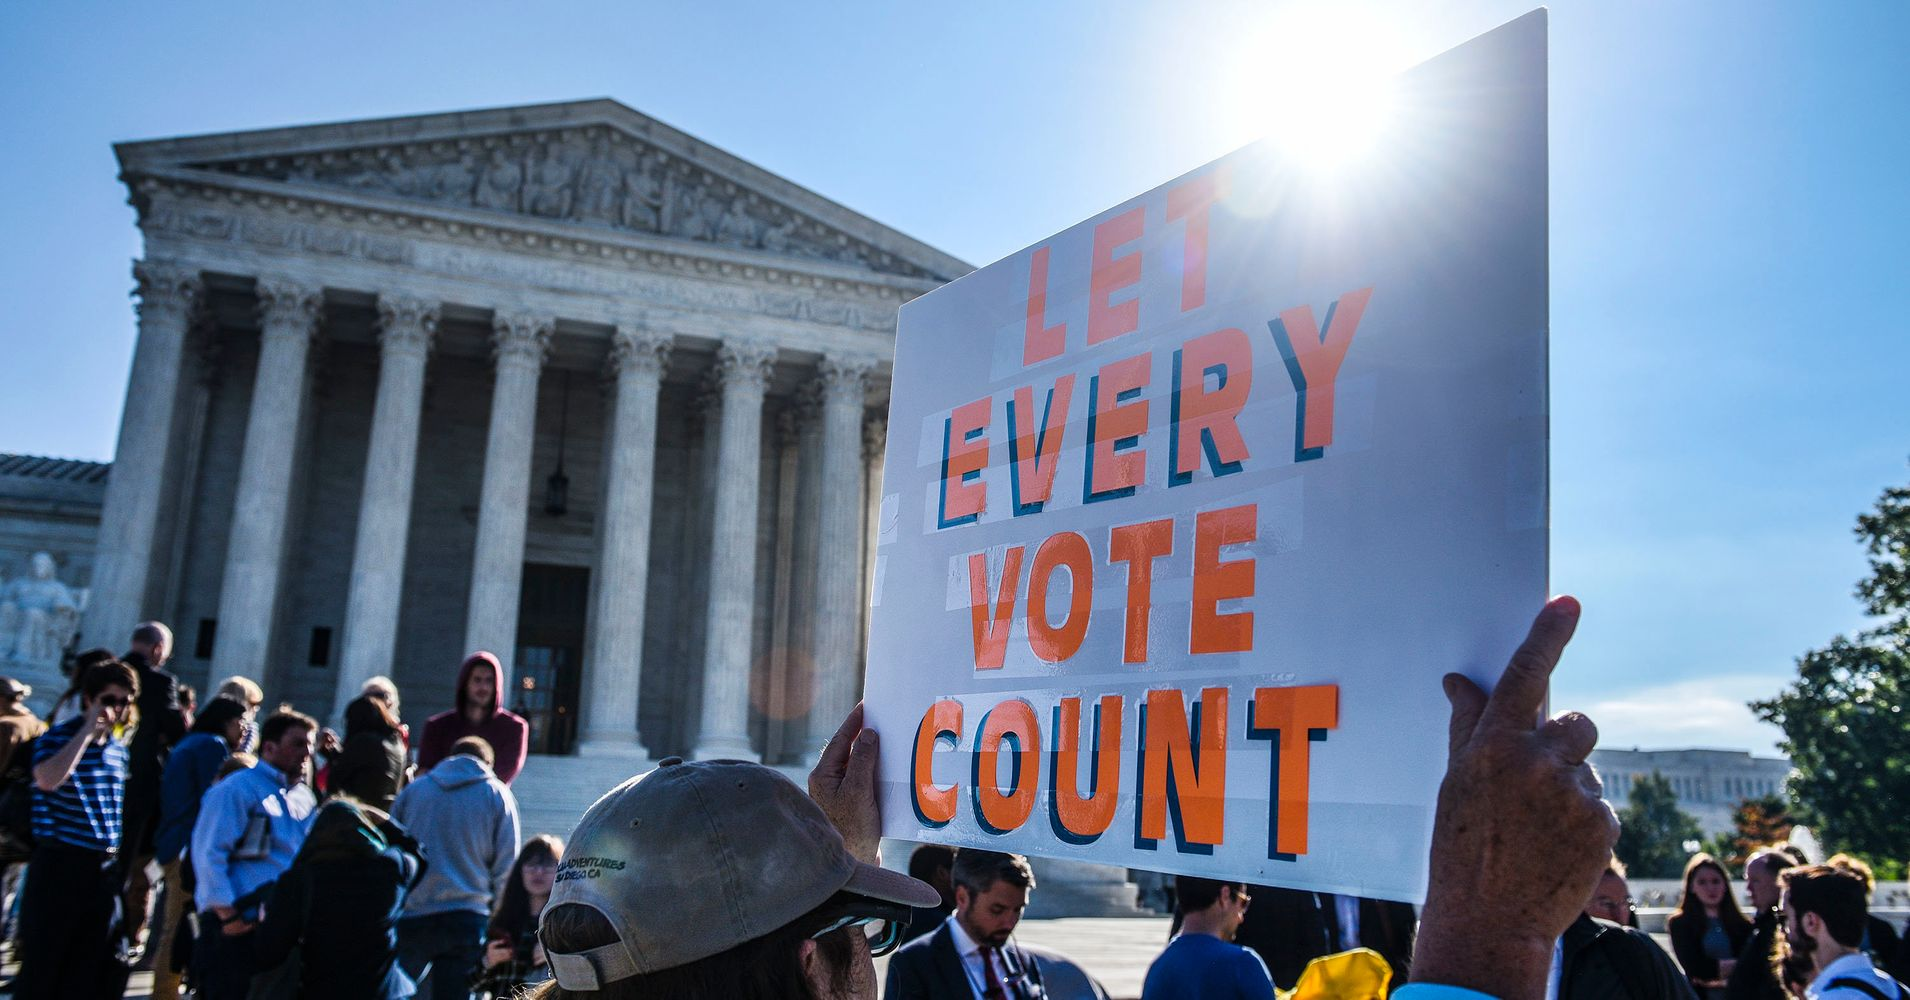 government gerrymandering Gerrymander definition, the dividing of a state, county, etc, into election districts so as to give one political party a majority in many districts while concentrating the voting strength of the other party into as few districts as possible.